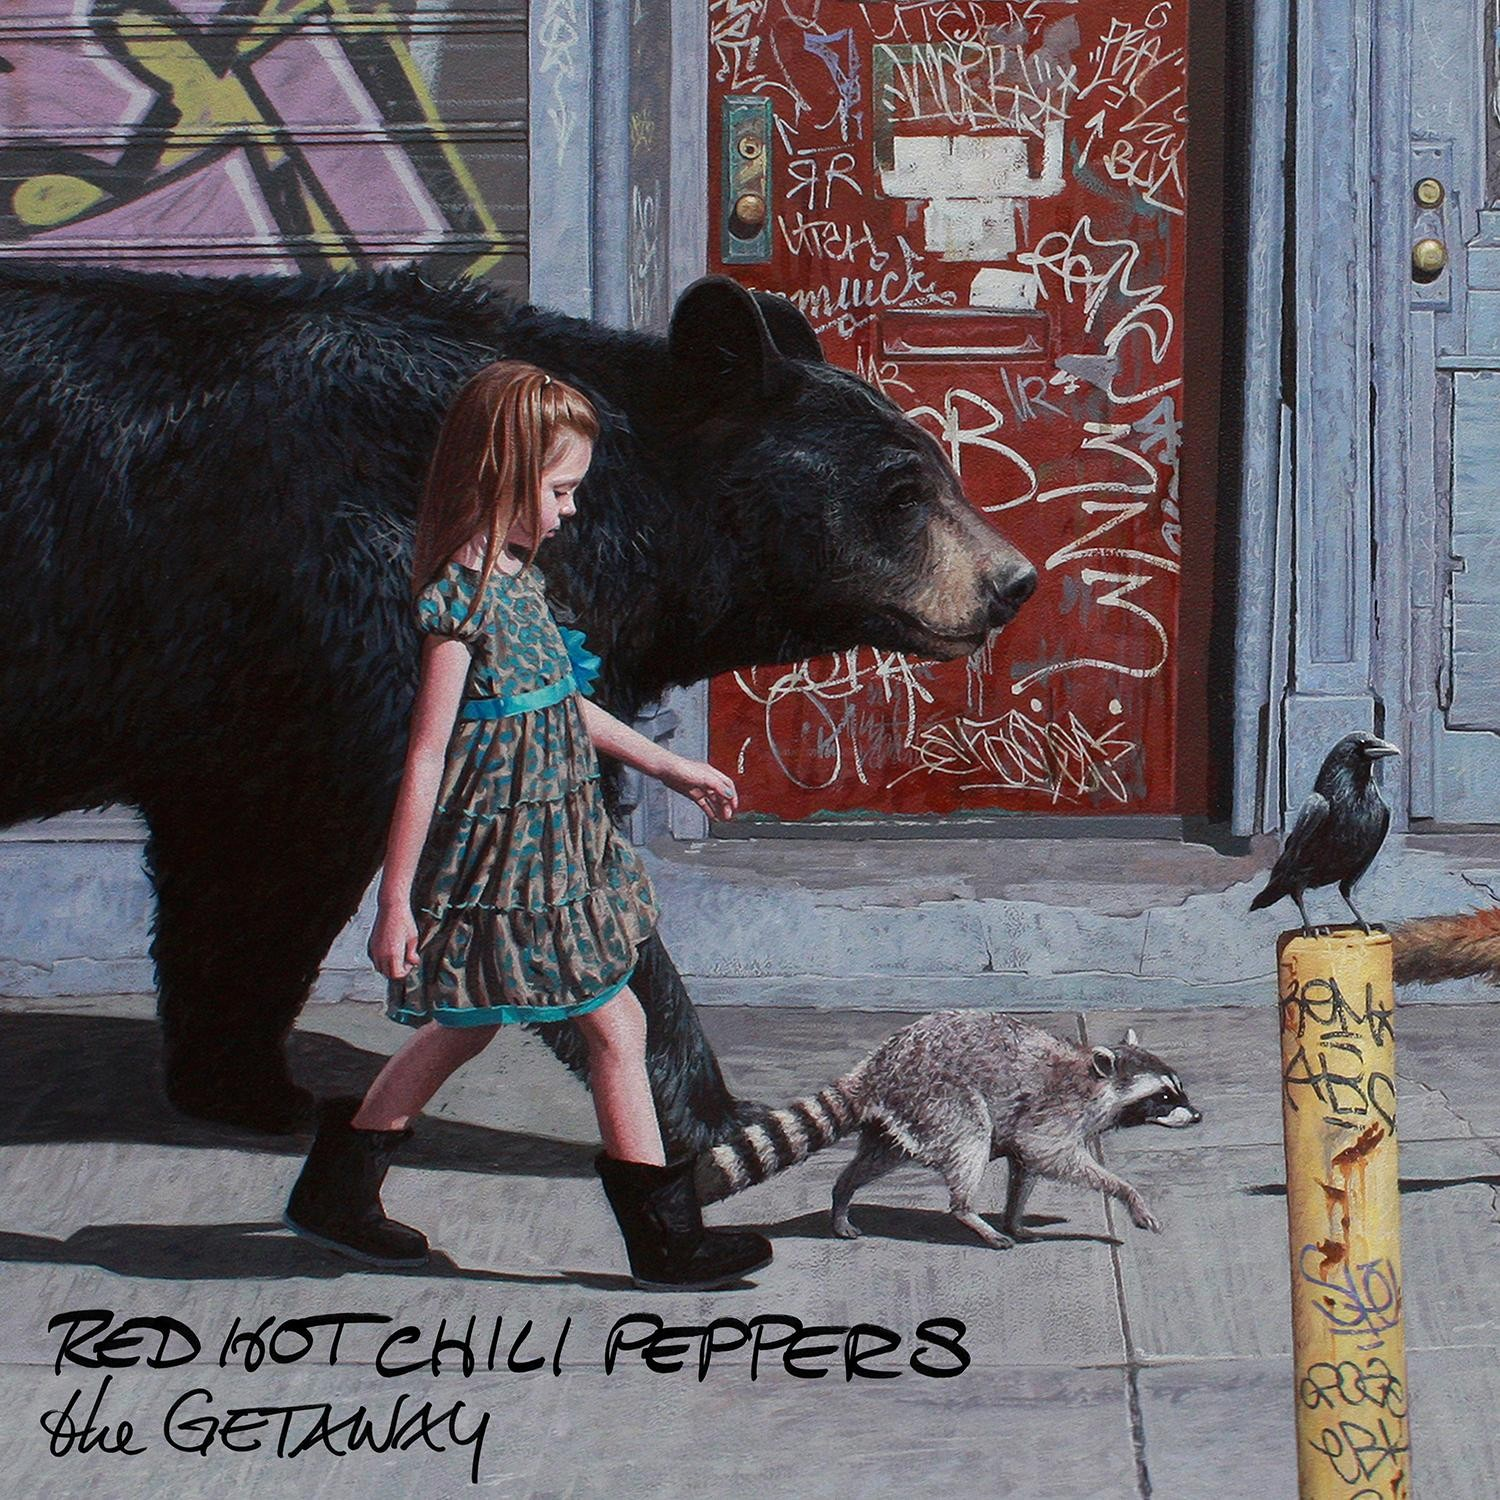 Capa de 'The Getaway', novo disco do Red Hot Chili Peppers (Foto: Divulgao)